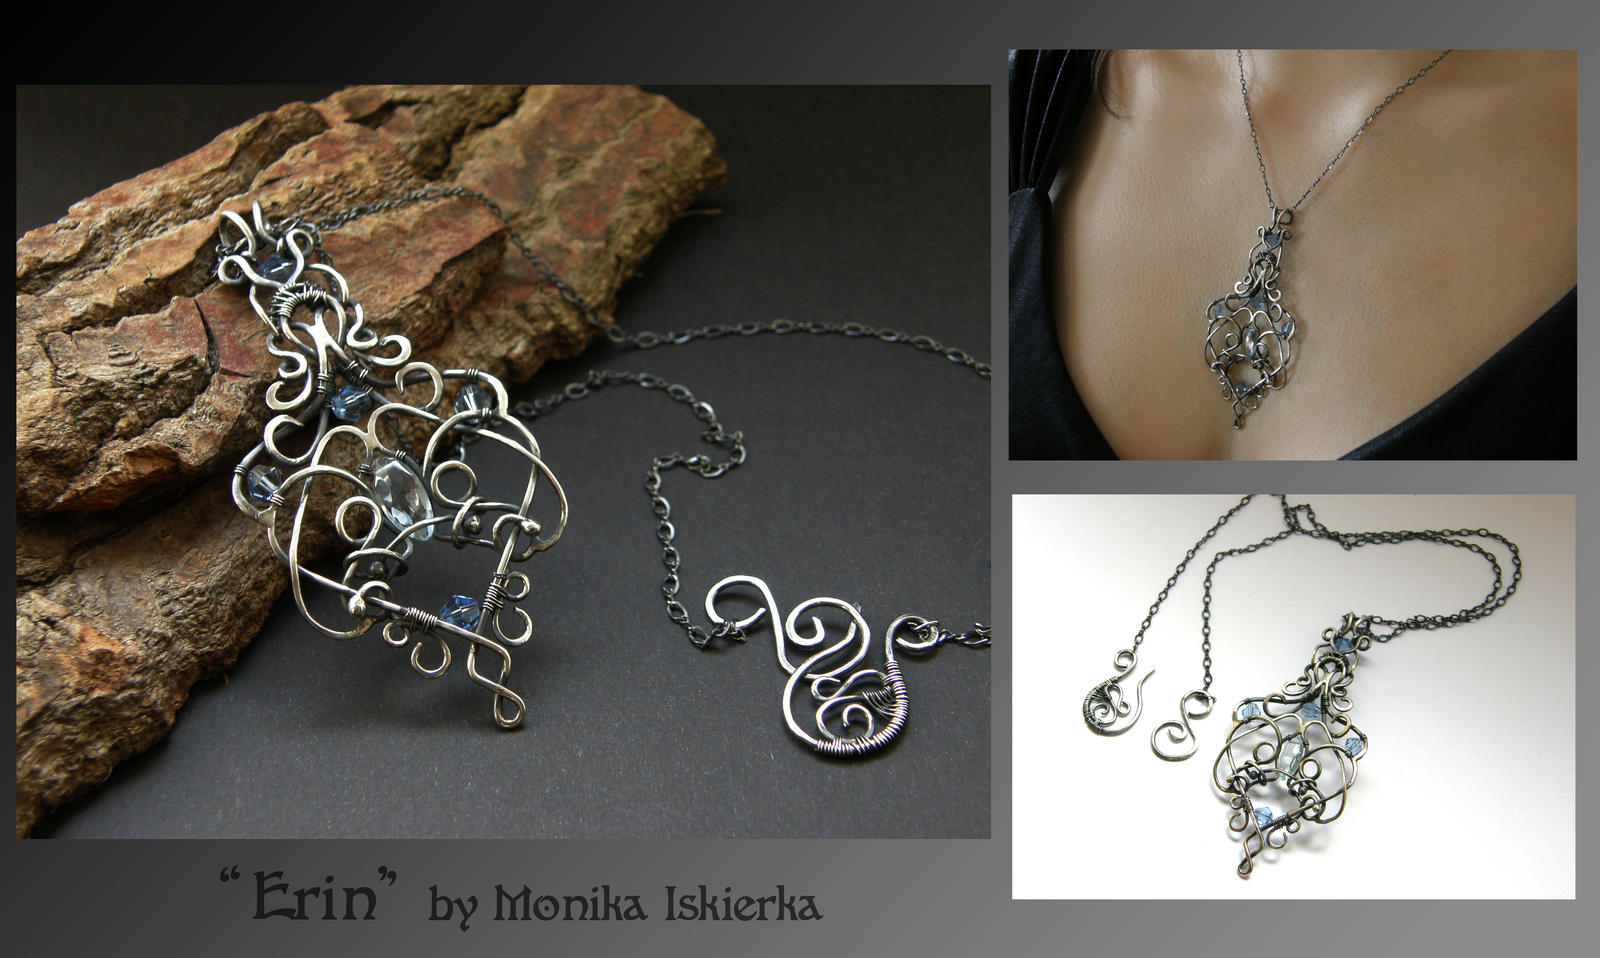 Erin- wire wrapped pendant by mea00 on DeviantArt